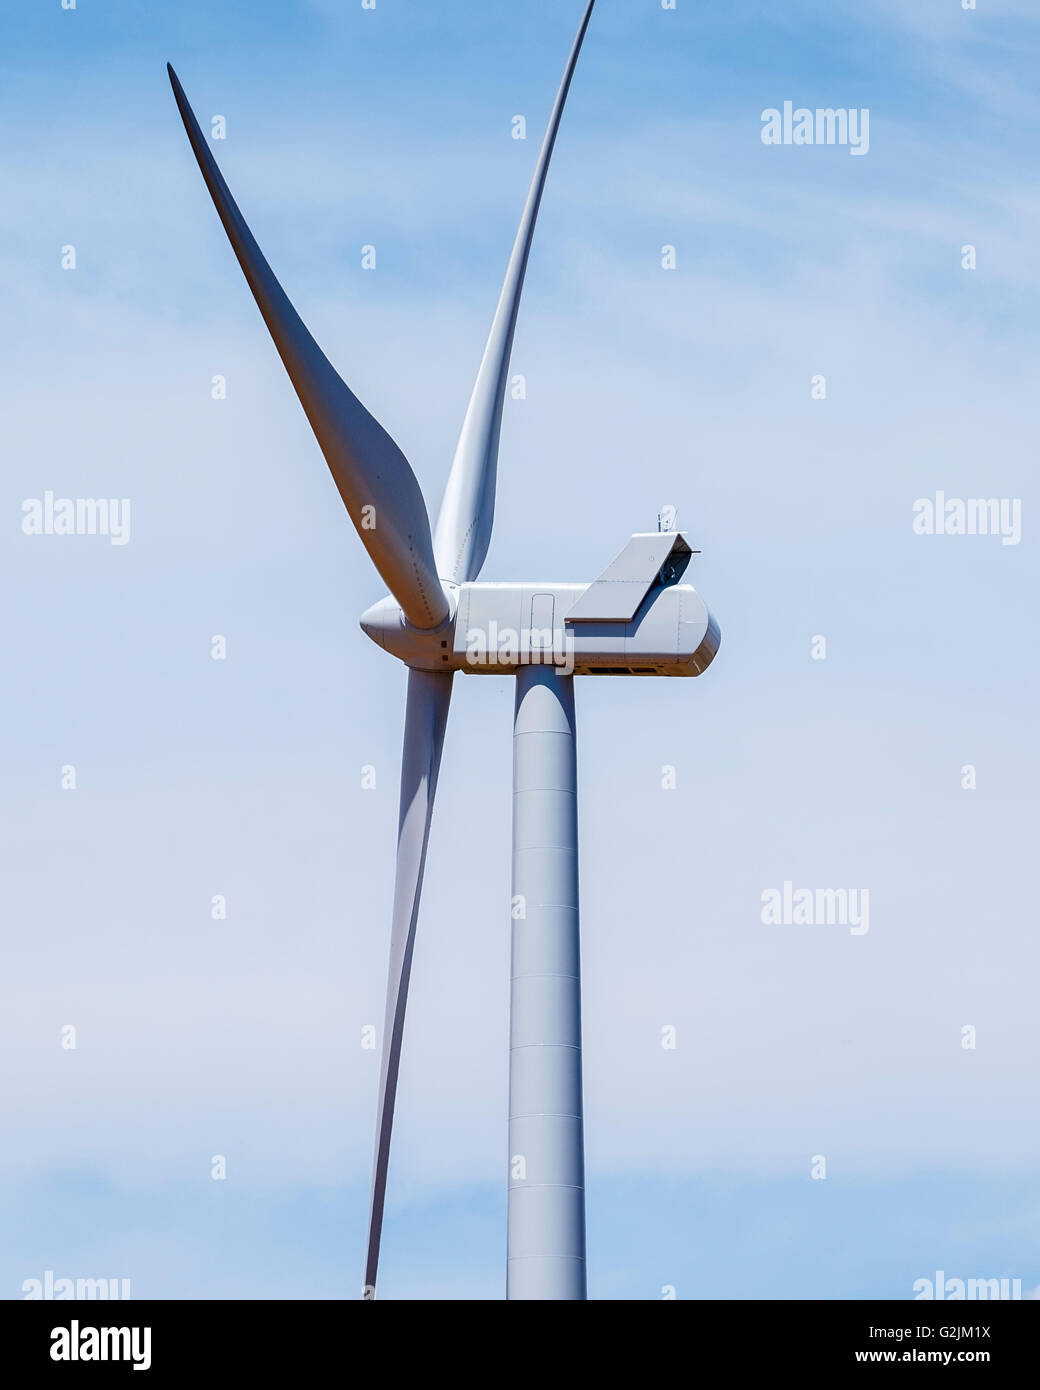 Close up view of a wind turbine against a blue and cloudy sky in Oklahoma, USA. - Stock Image